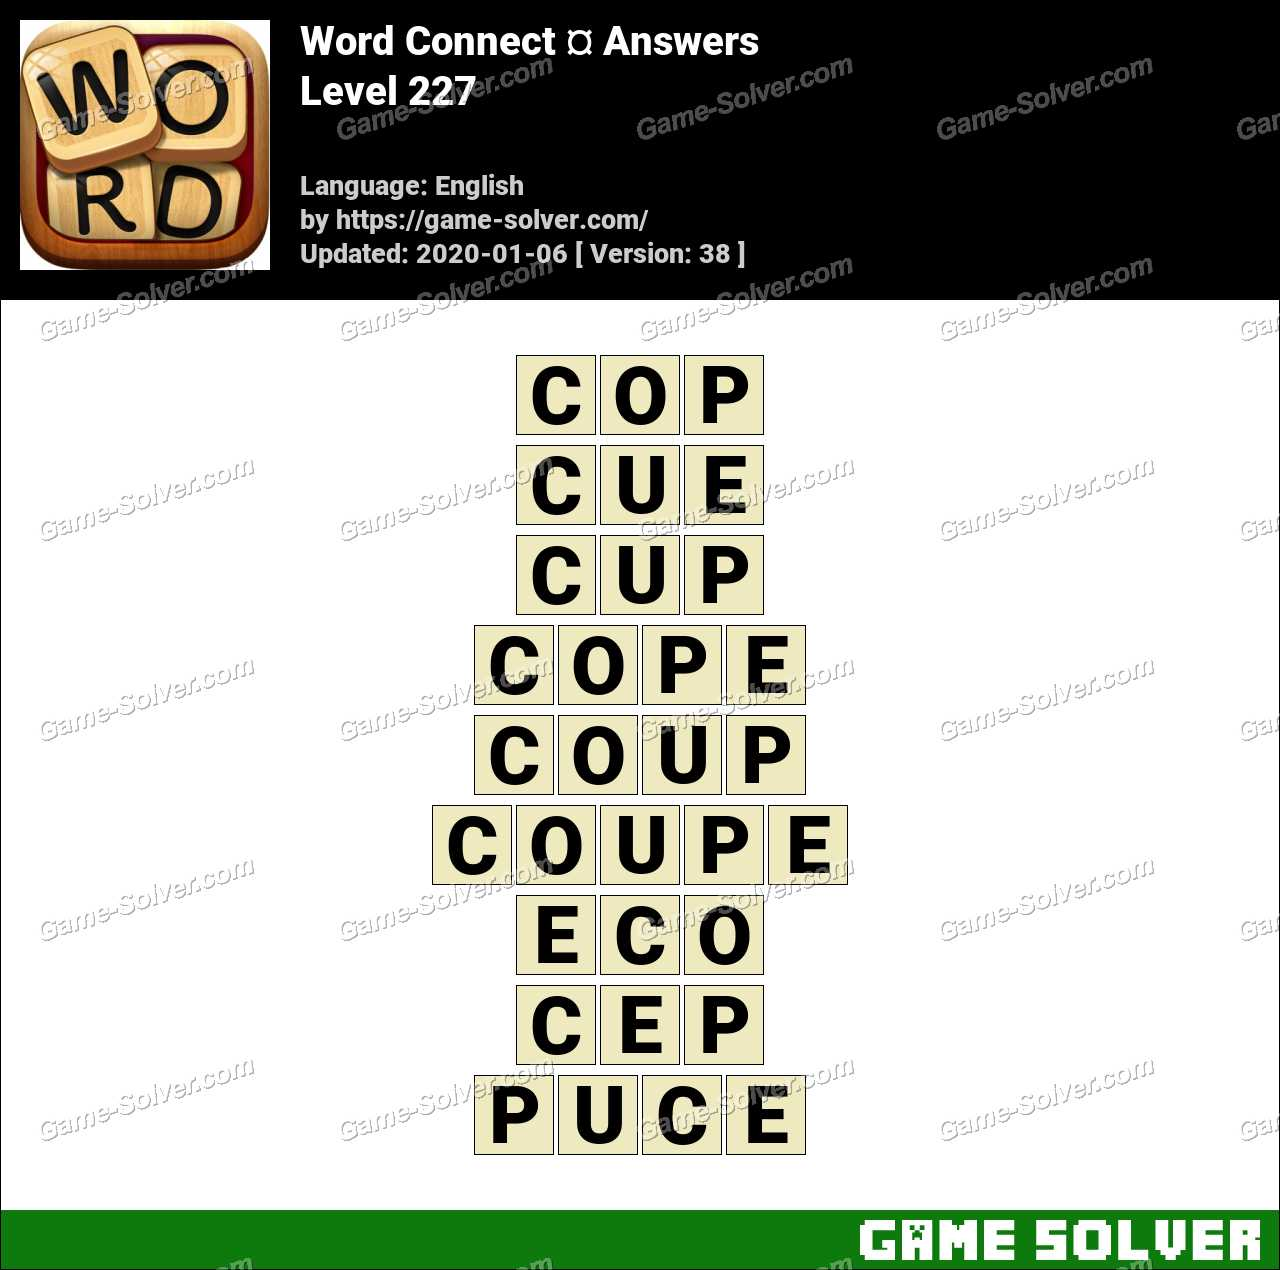 Word Connect Level 227 Answers